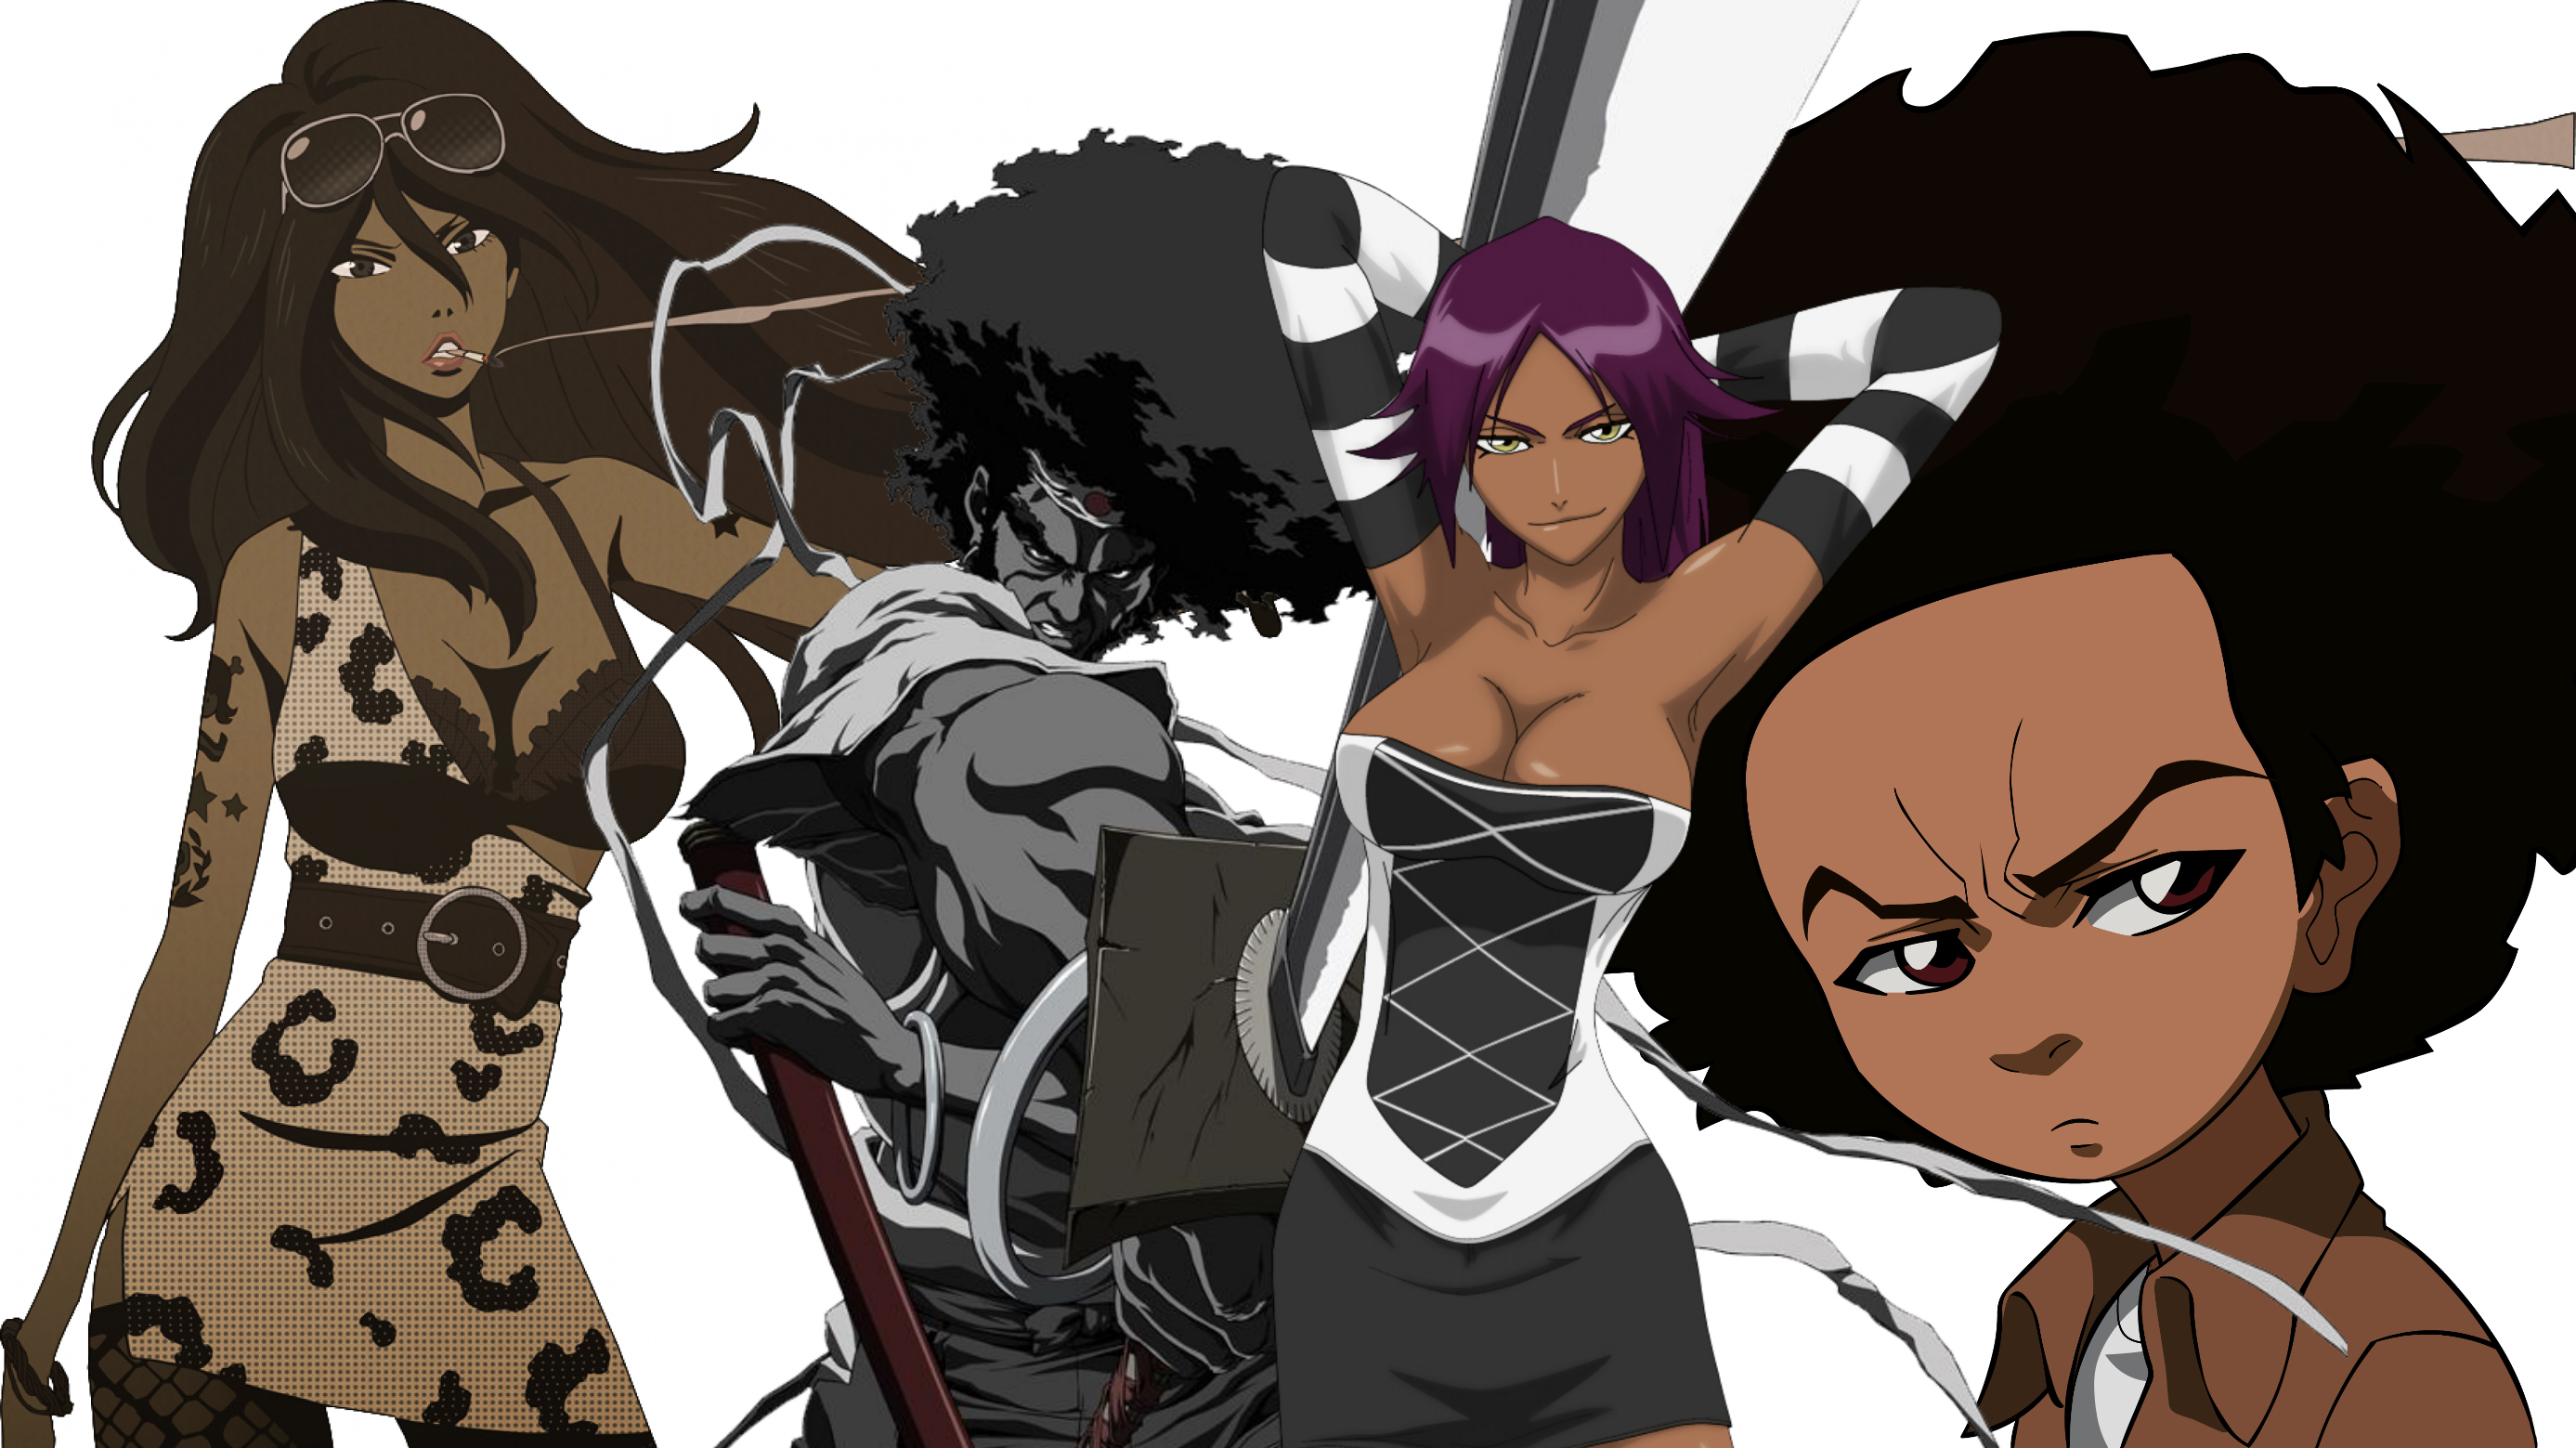 It S Time For Japanese Manga Artists To Change Their Stereotypical Portrayal Of Black Anime Characters Omnigeekempire